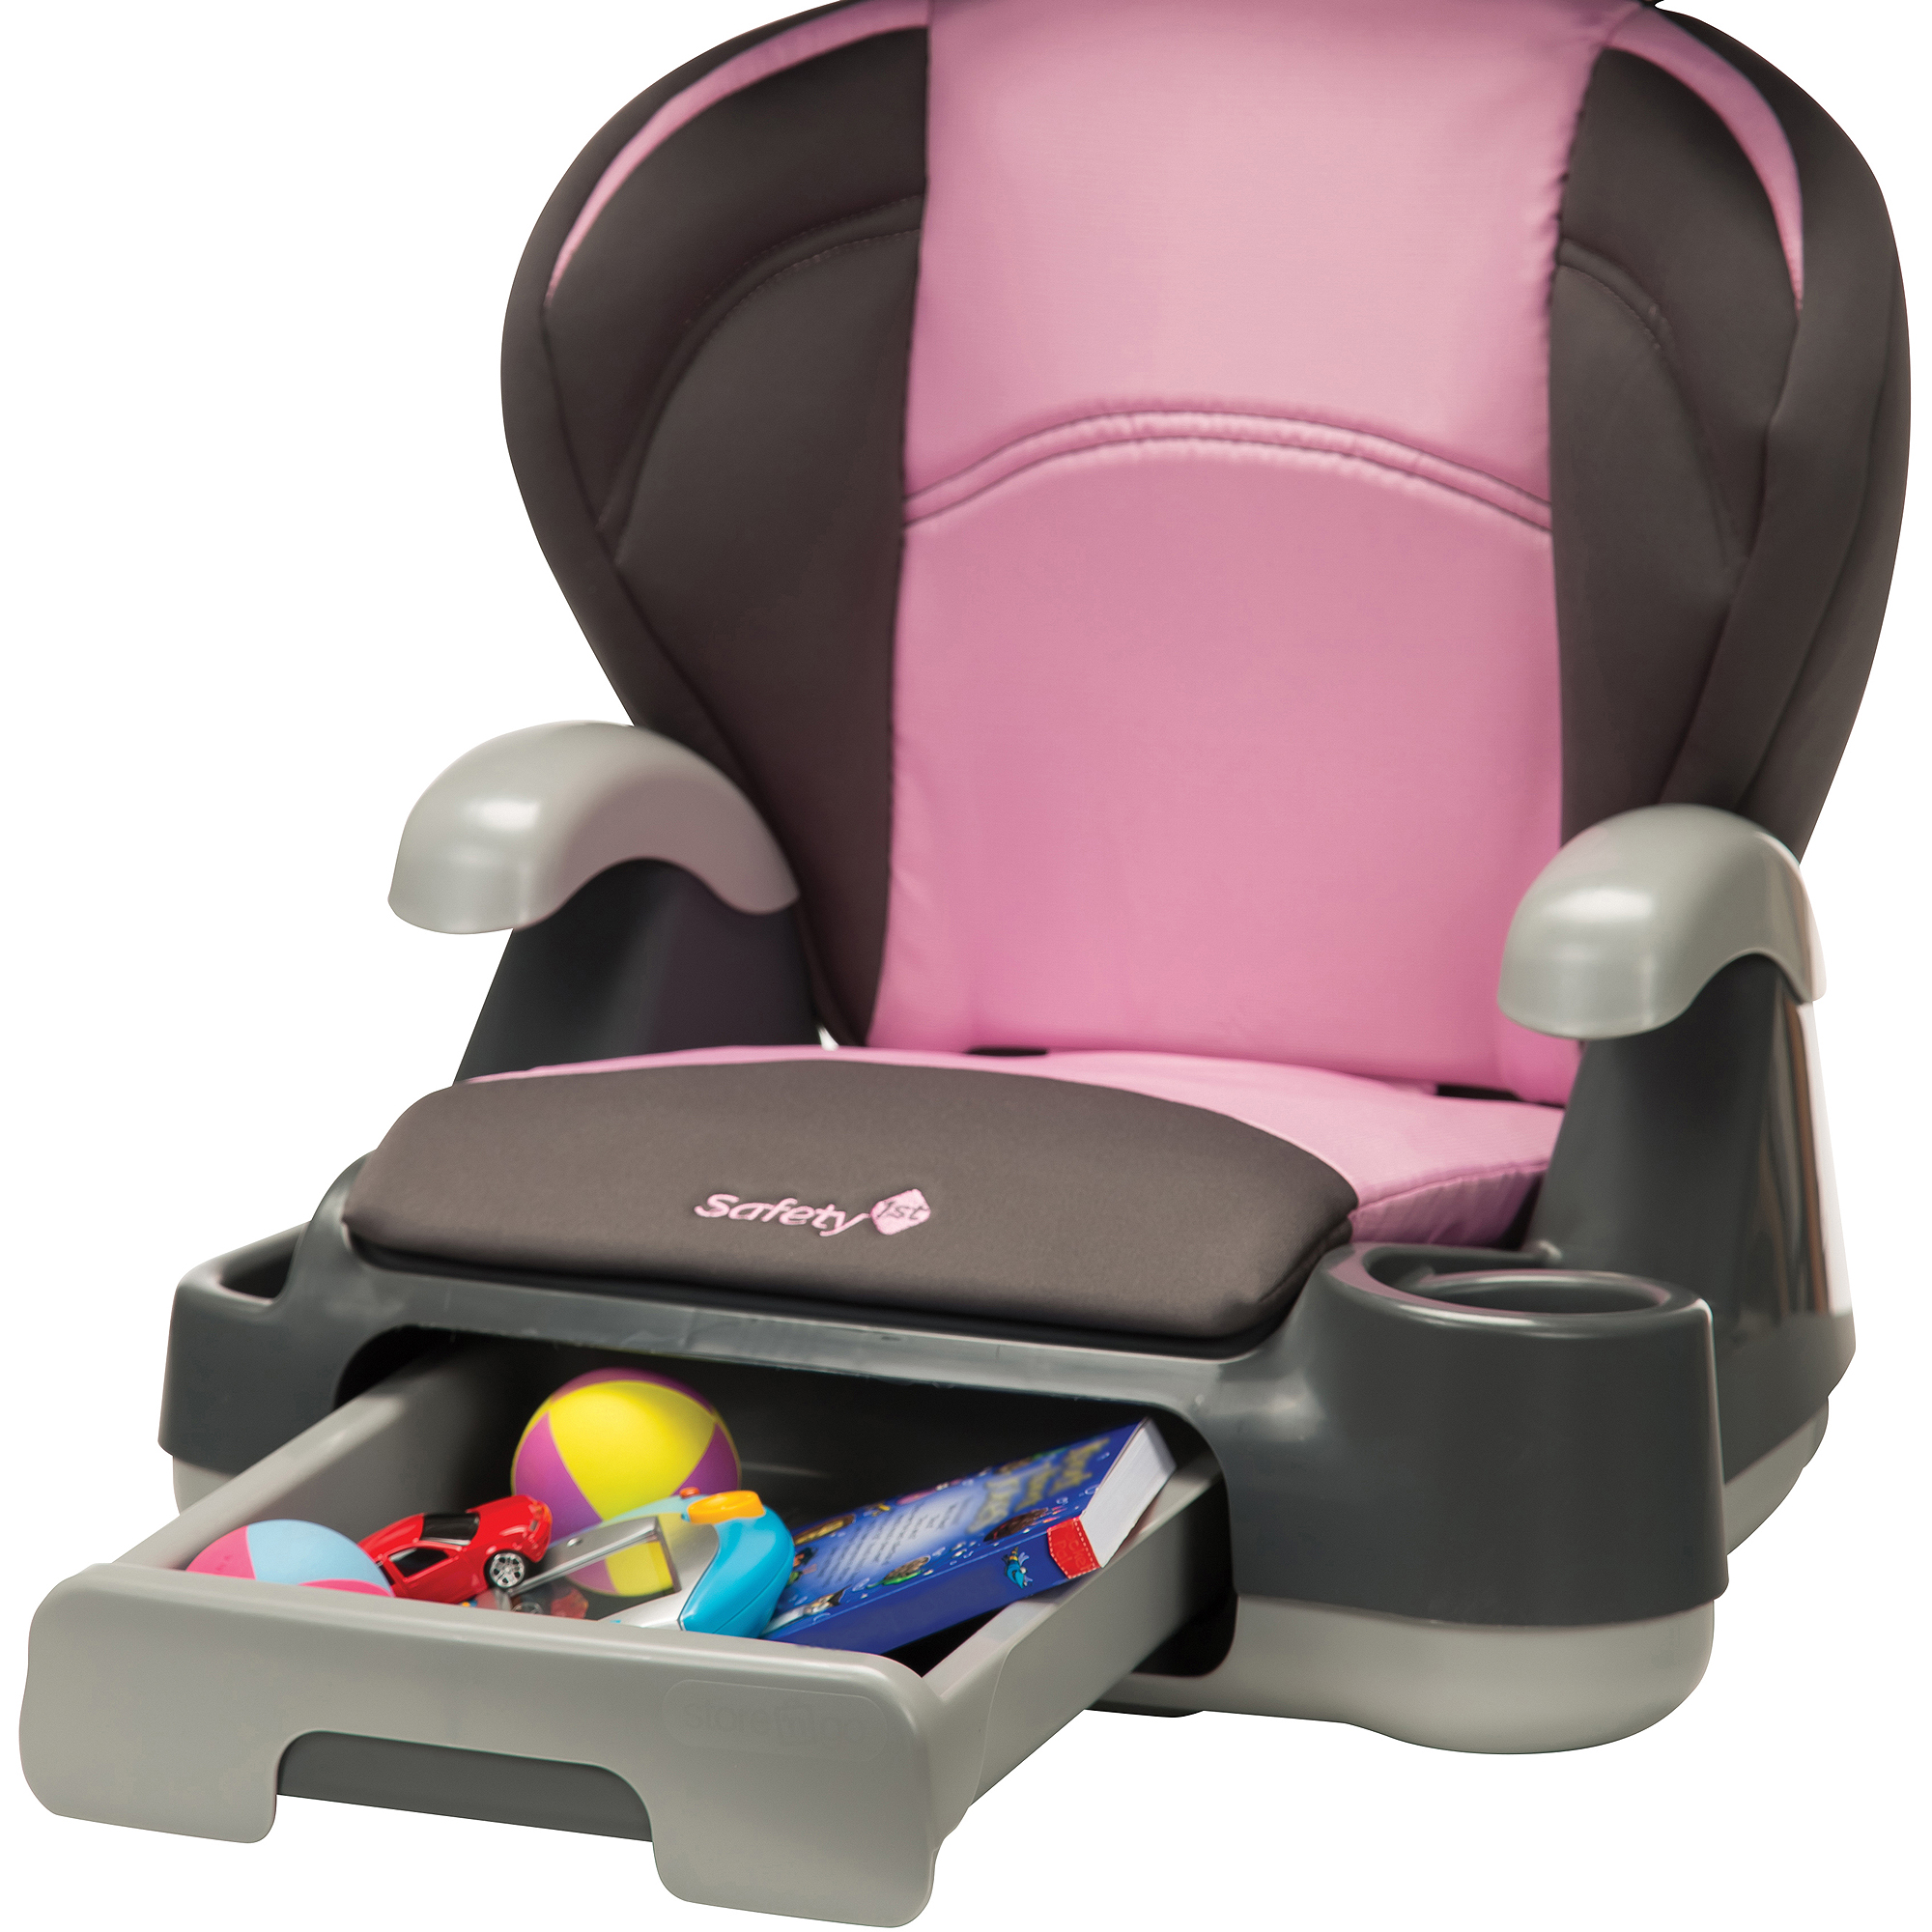 Safety 1st Store 'N Go Belt-Positioning Booster Car Seat, Nora